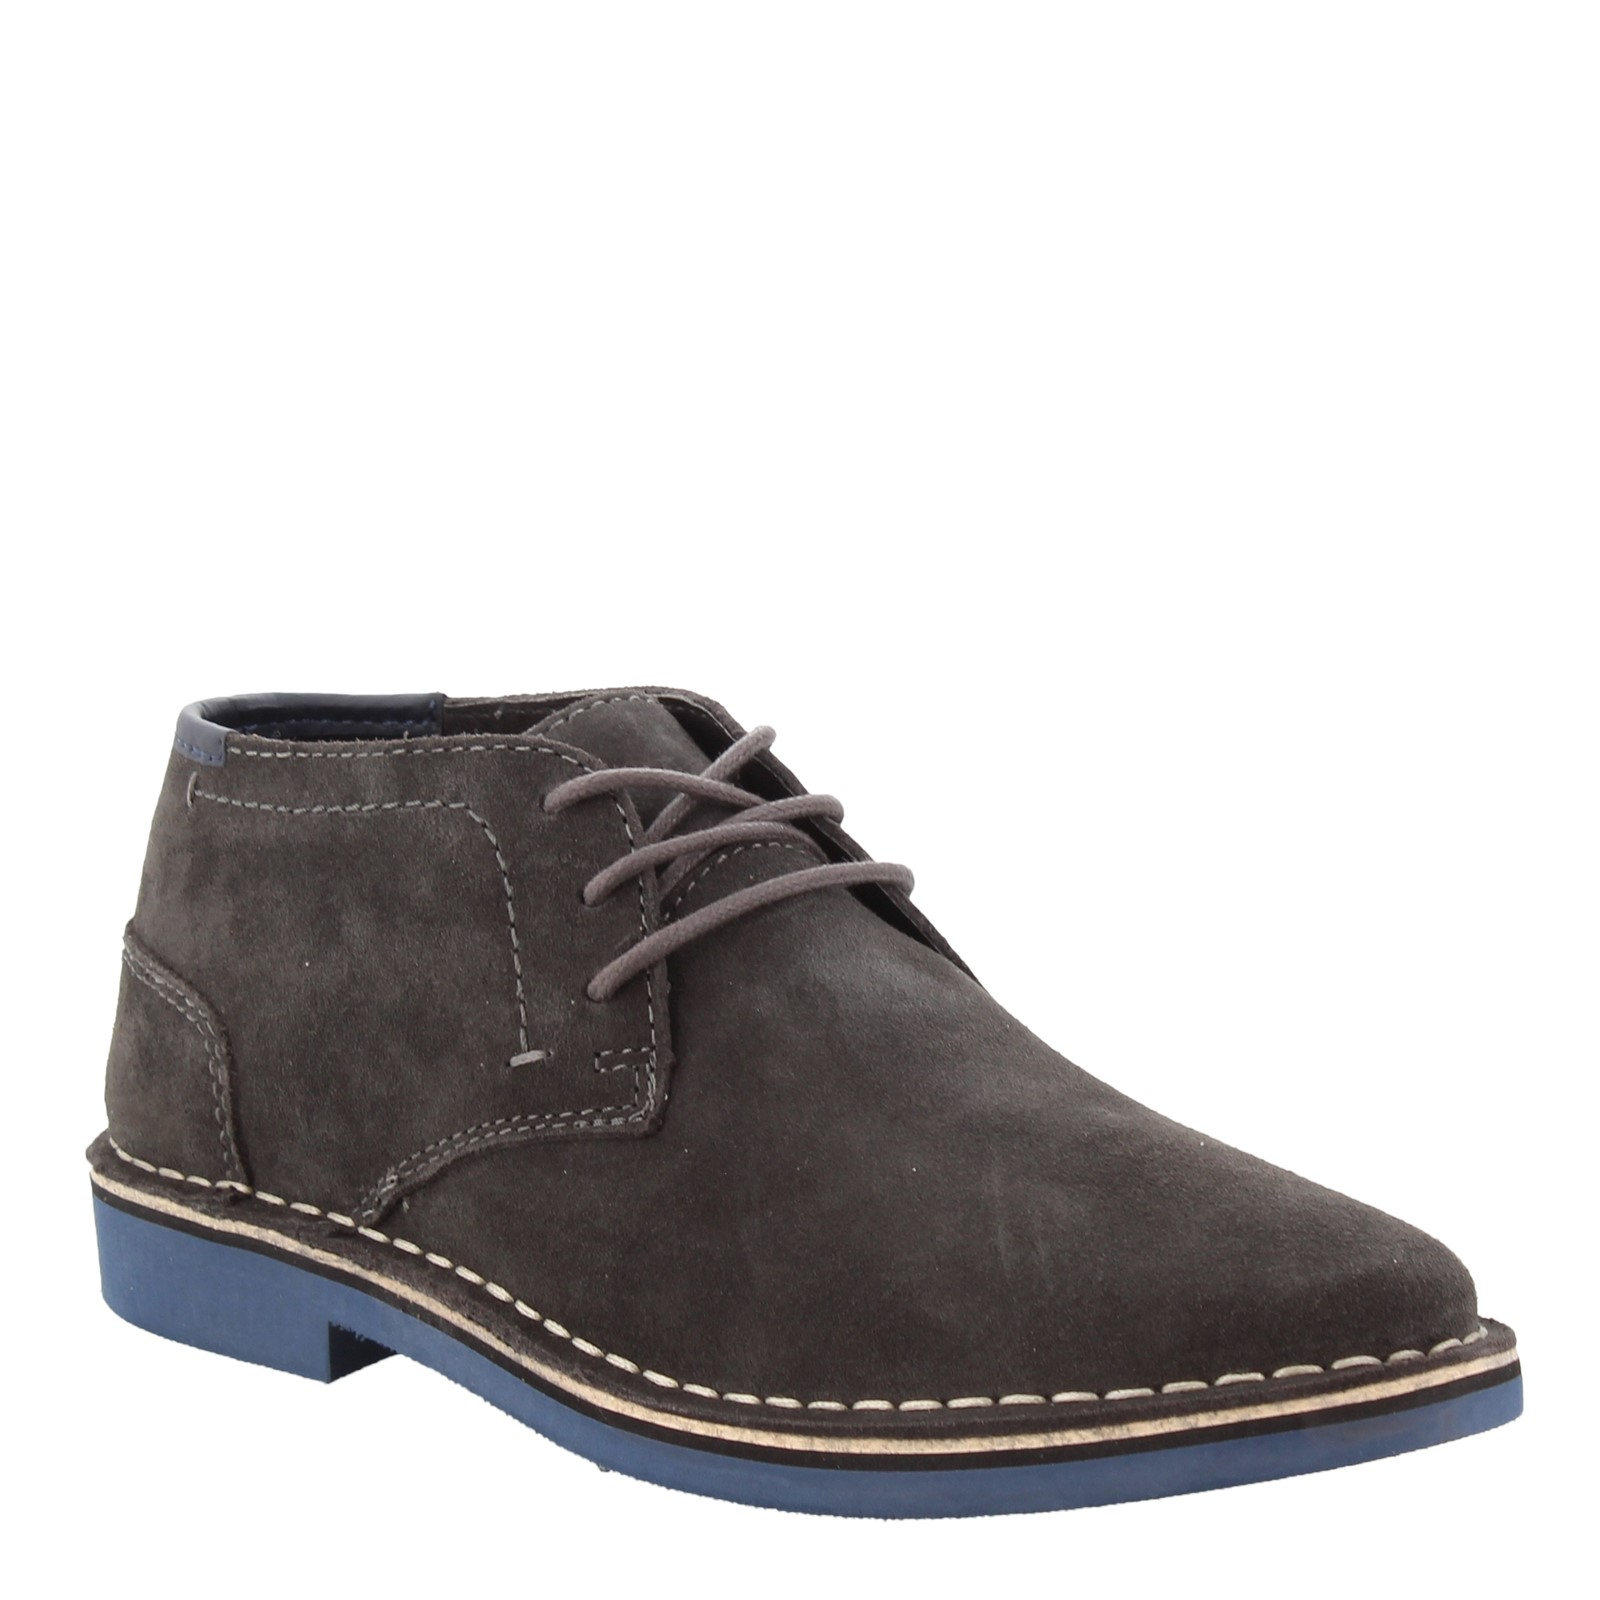 Men's Kenneth Cole Reaction, Desert Sun Chukka Boot